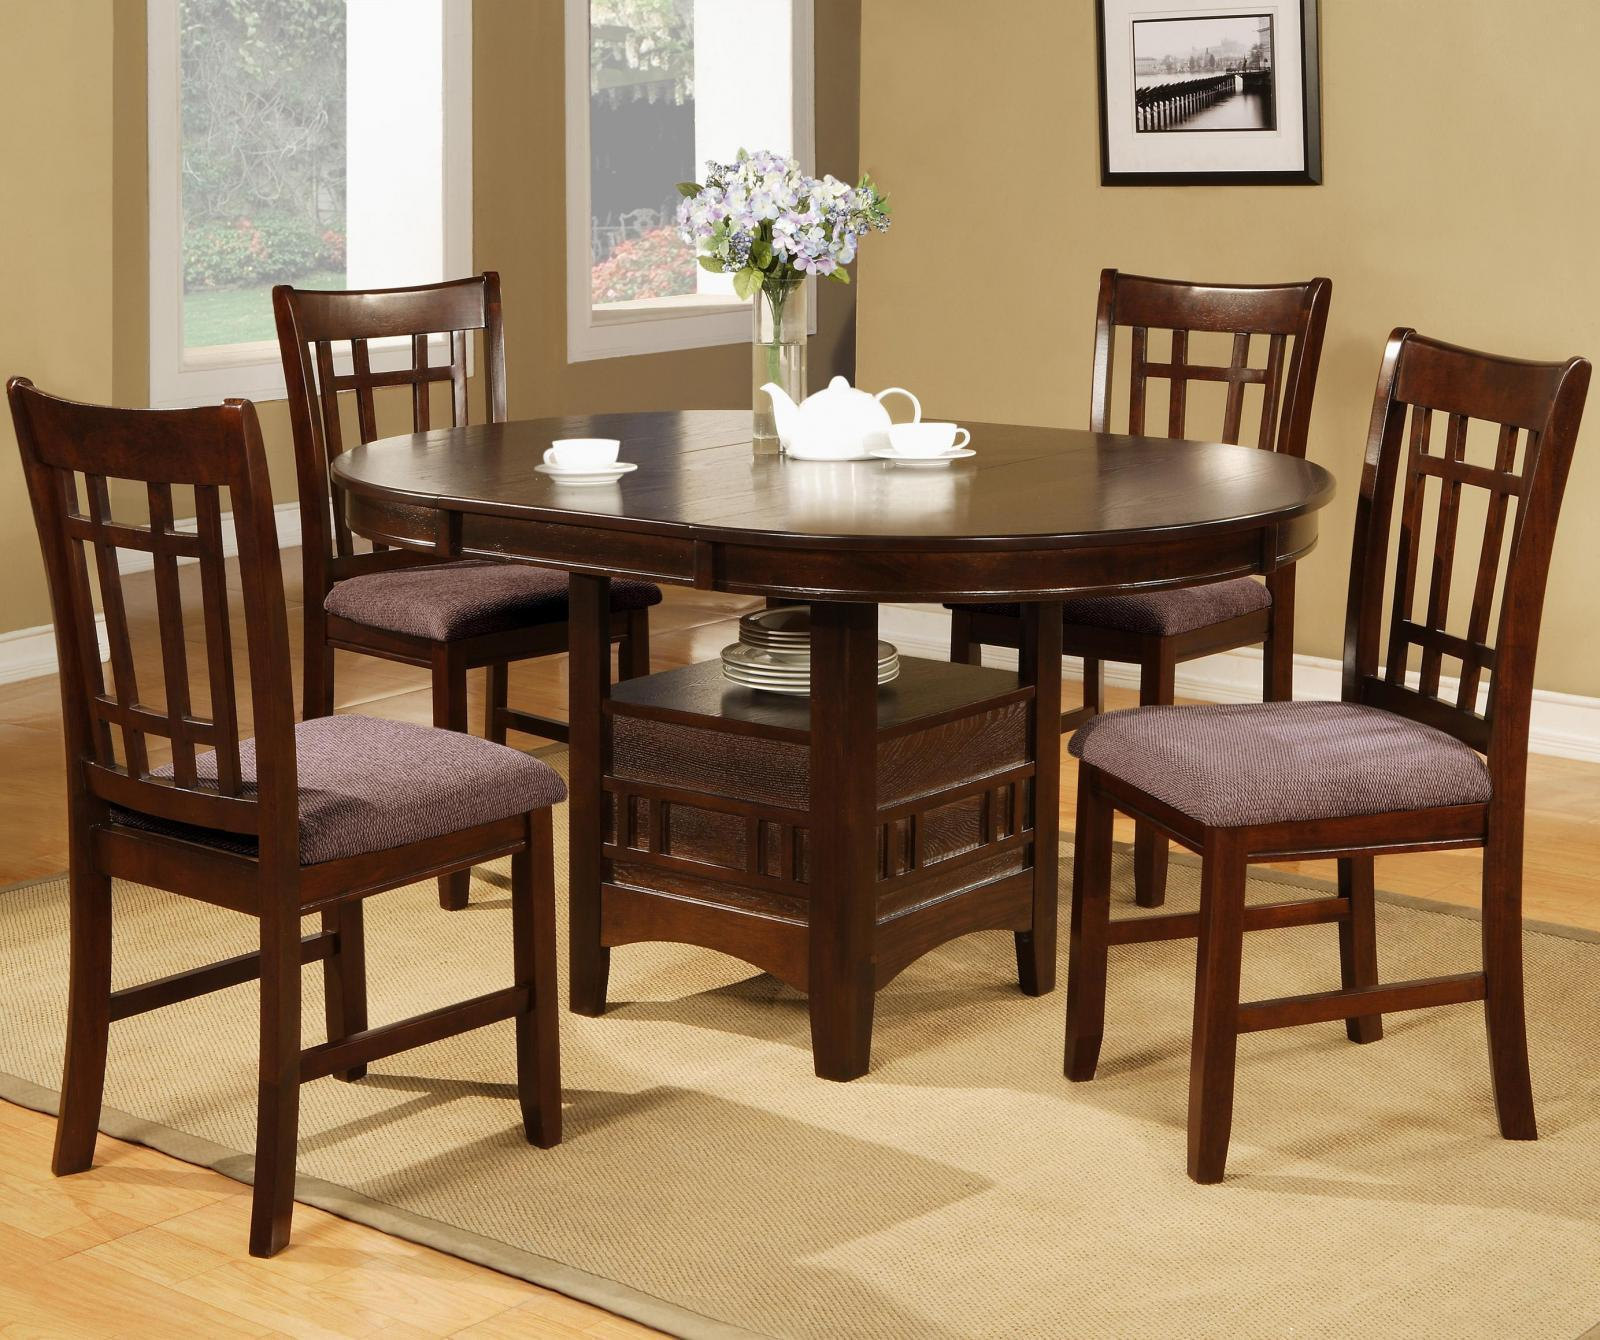 Used Dining Room Sets For Sale: Oak Dining Table For Sale